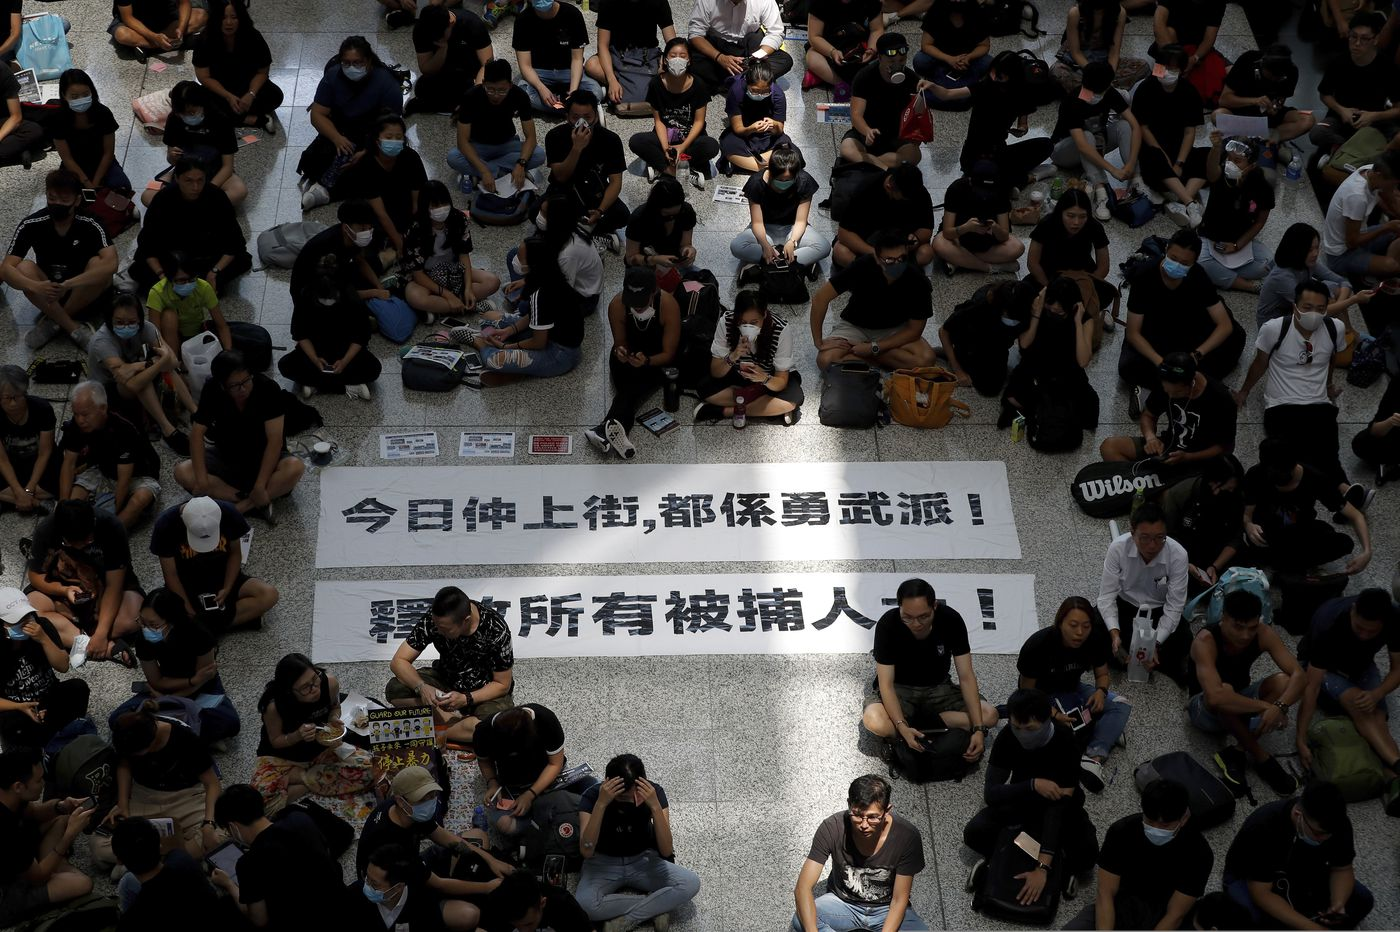 Hong Kong airport struggles to reopen after protests